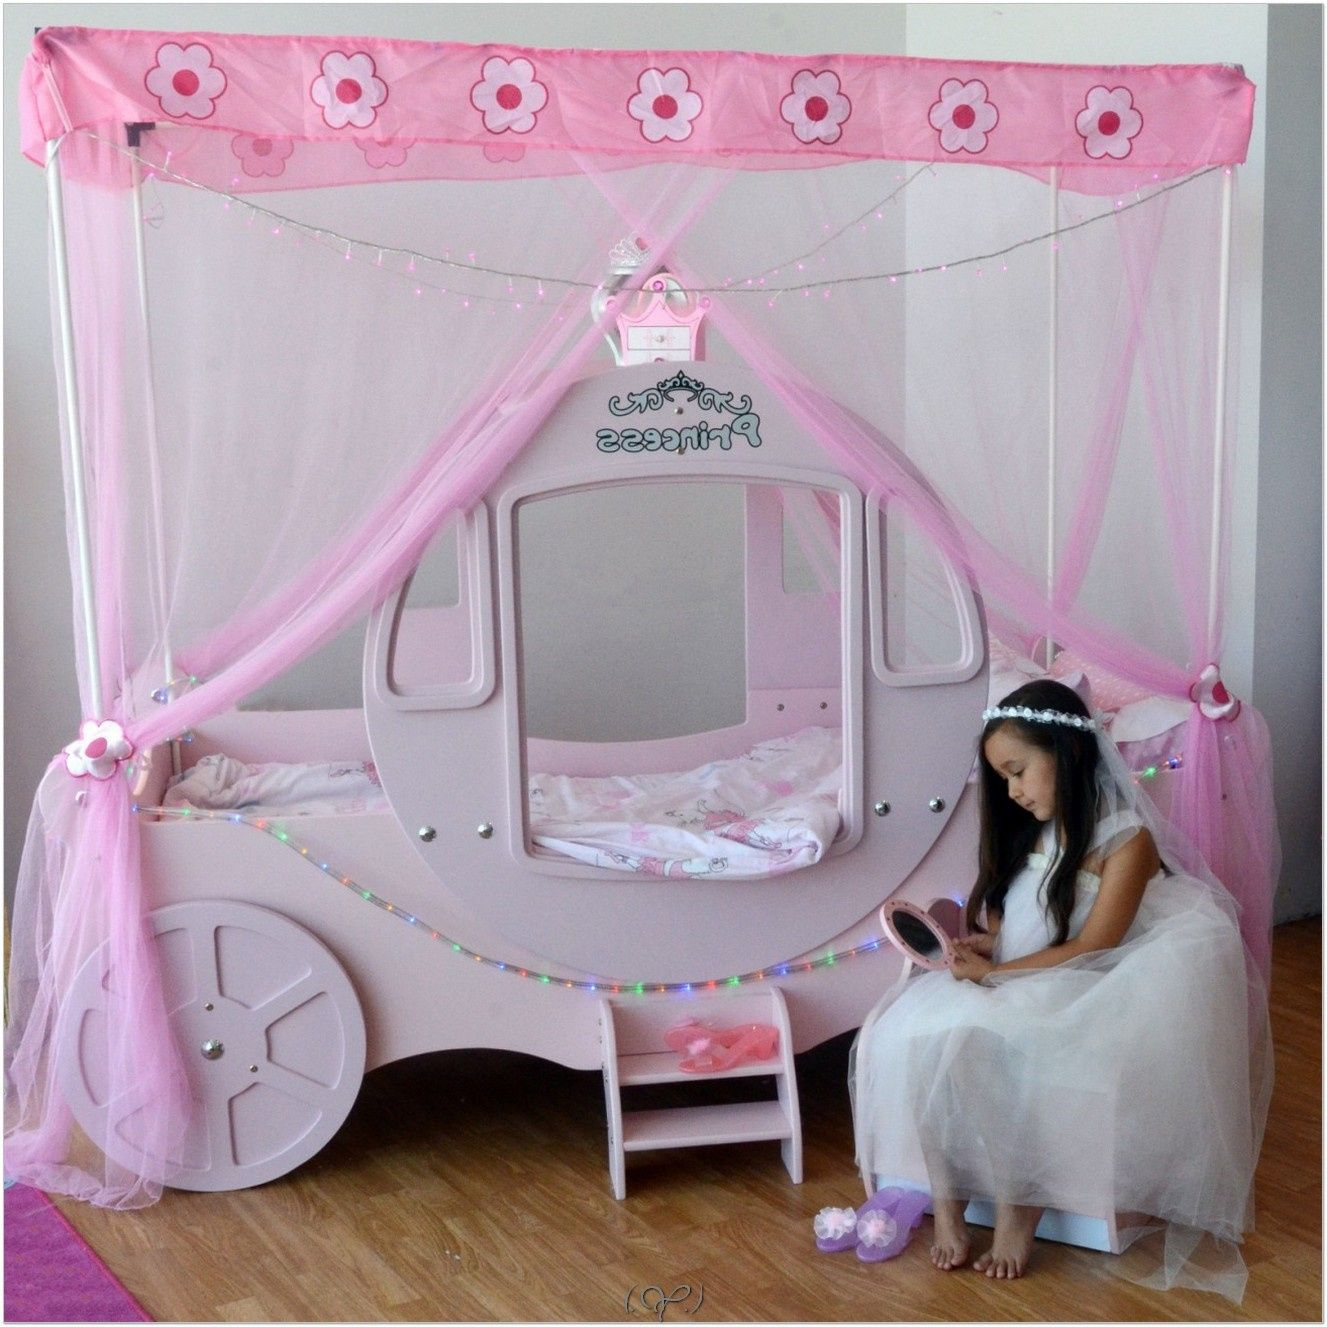 99+ Cars toddler Bed with Tent - Bedroom Home Office Ideas ...